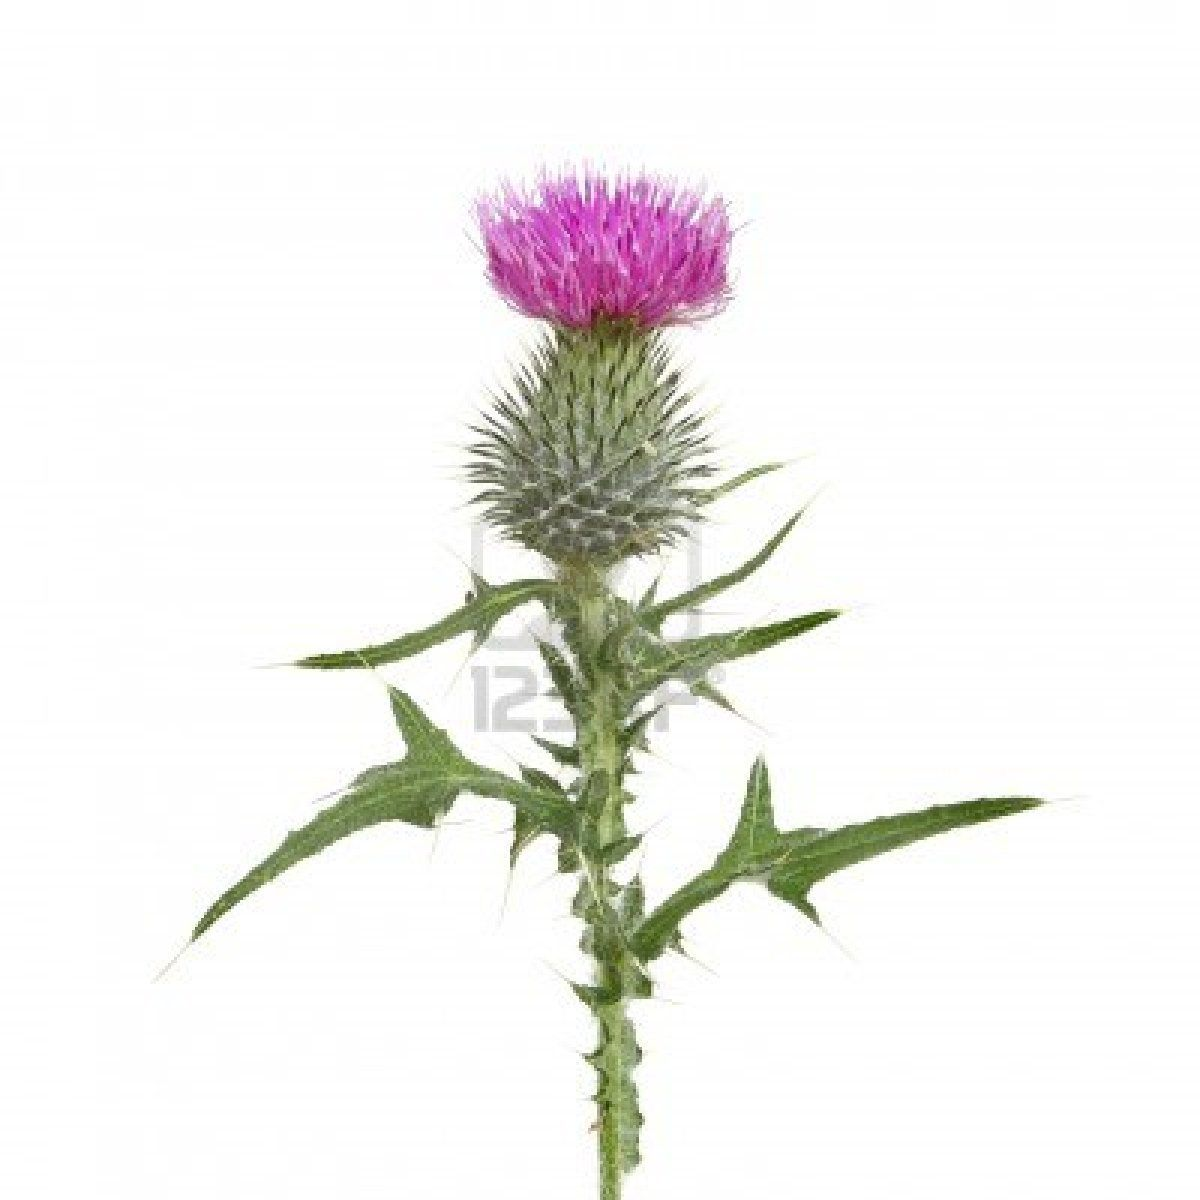 Thistle flower and leaves isolated against white tattoos thistle flower and leaves isolated against white mightylinksfo